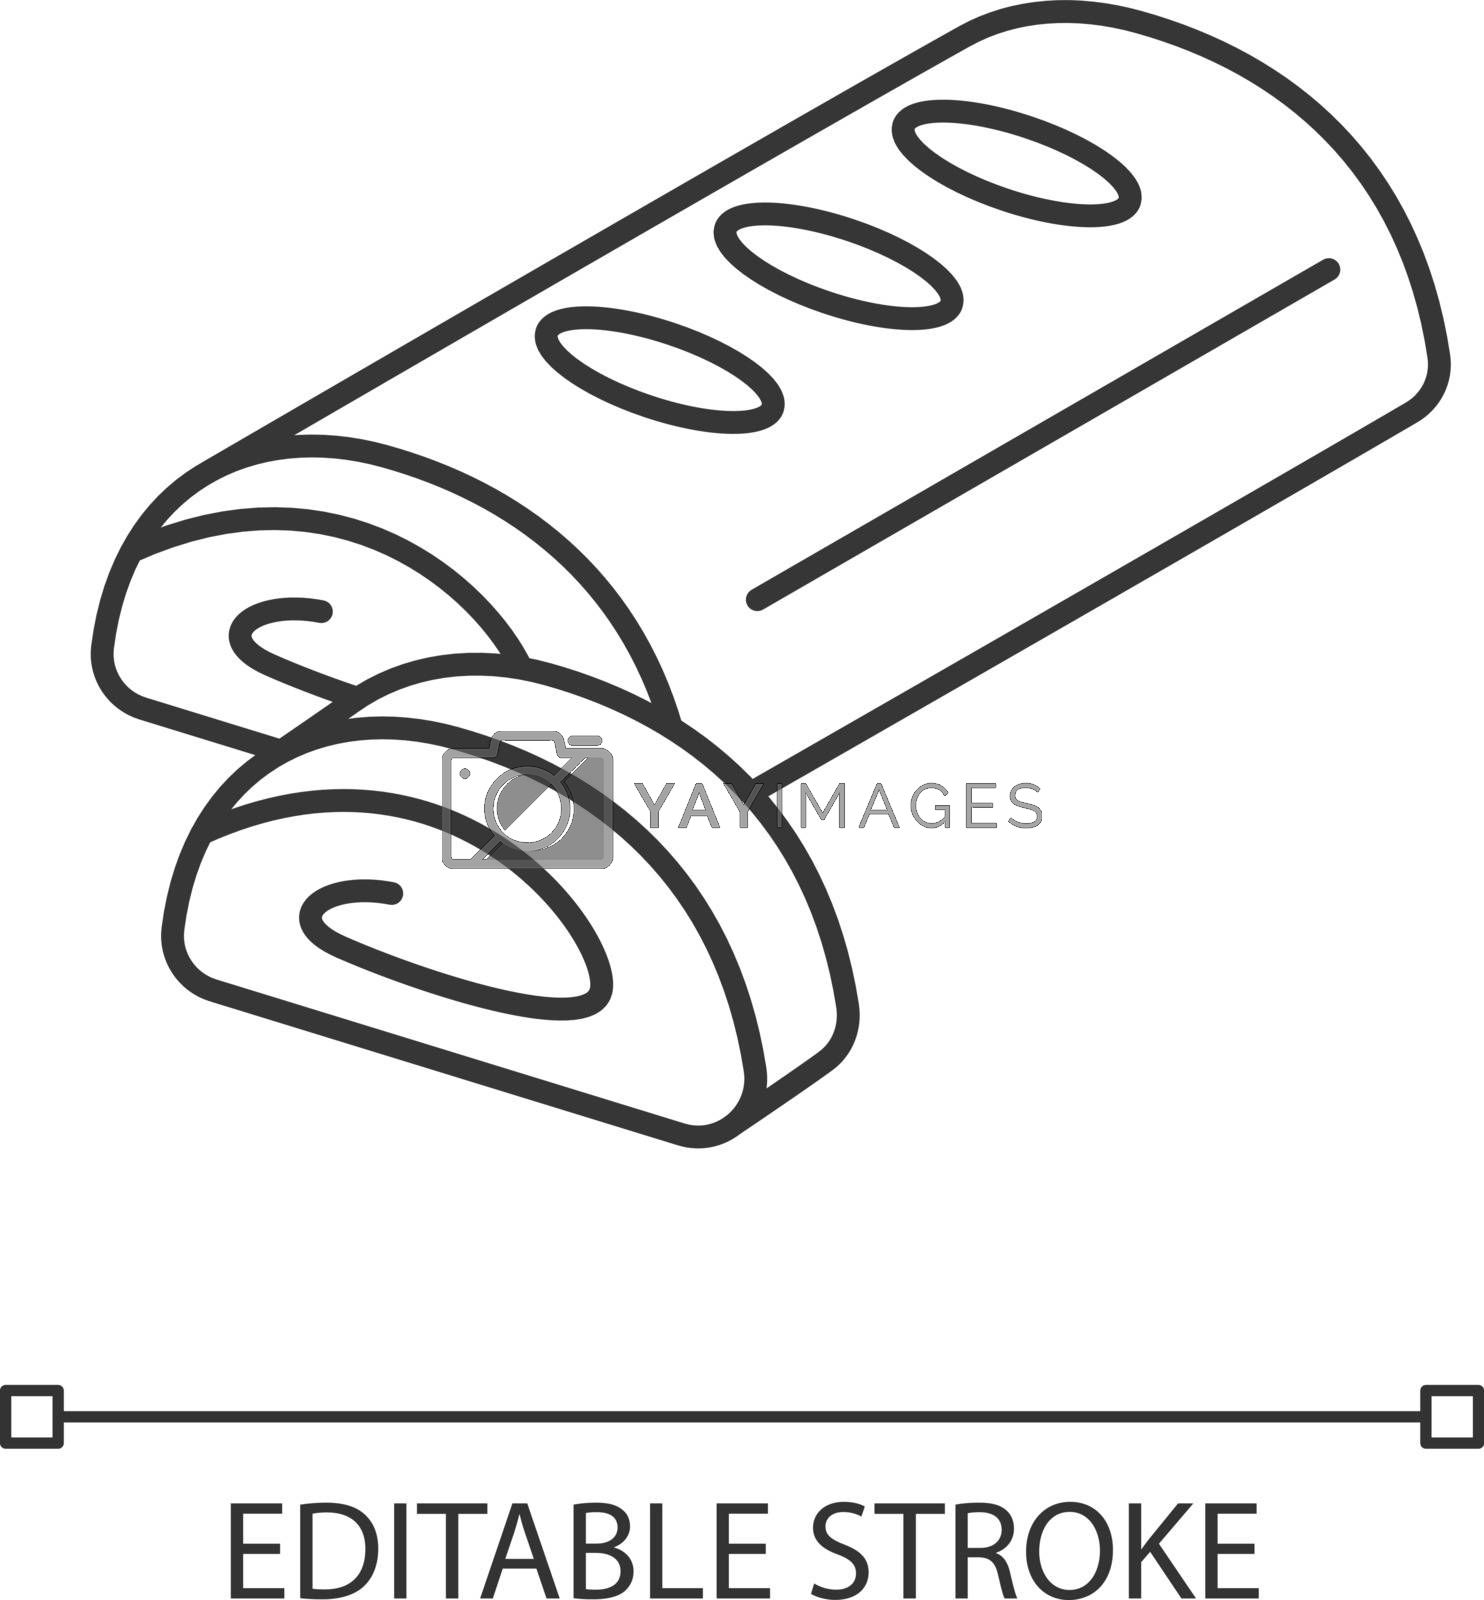 Strudel linear icon. Viennese apple strudel. Traditional Austrian pastry. European cuisine. Thin line customizable illustration. Contour symbol. Vector isolated outline drawing. Editable stroke